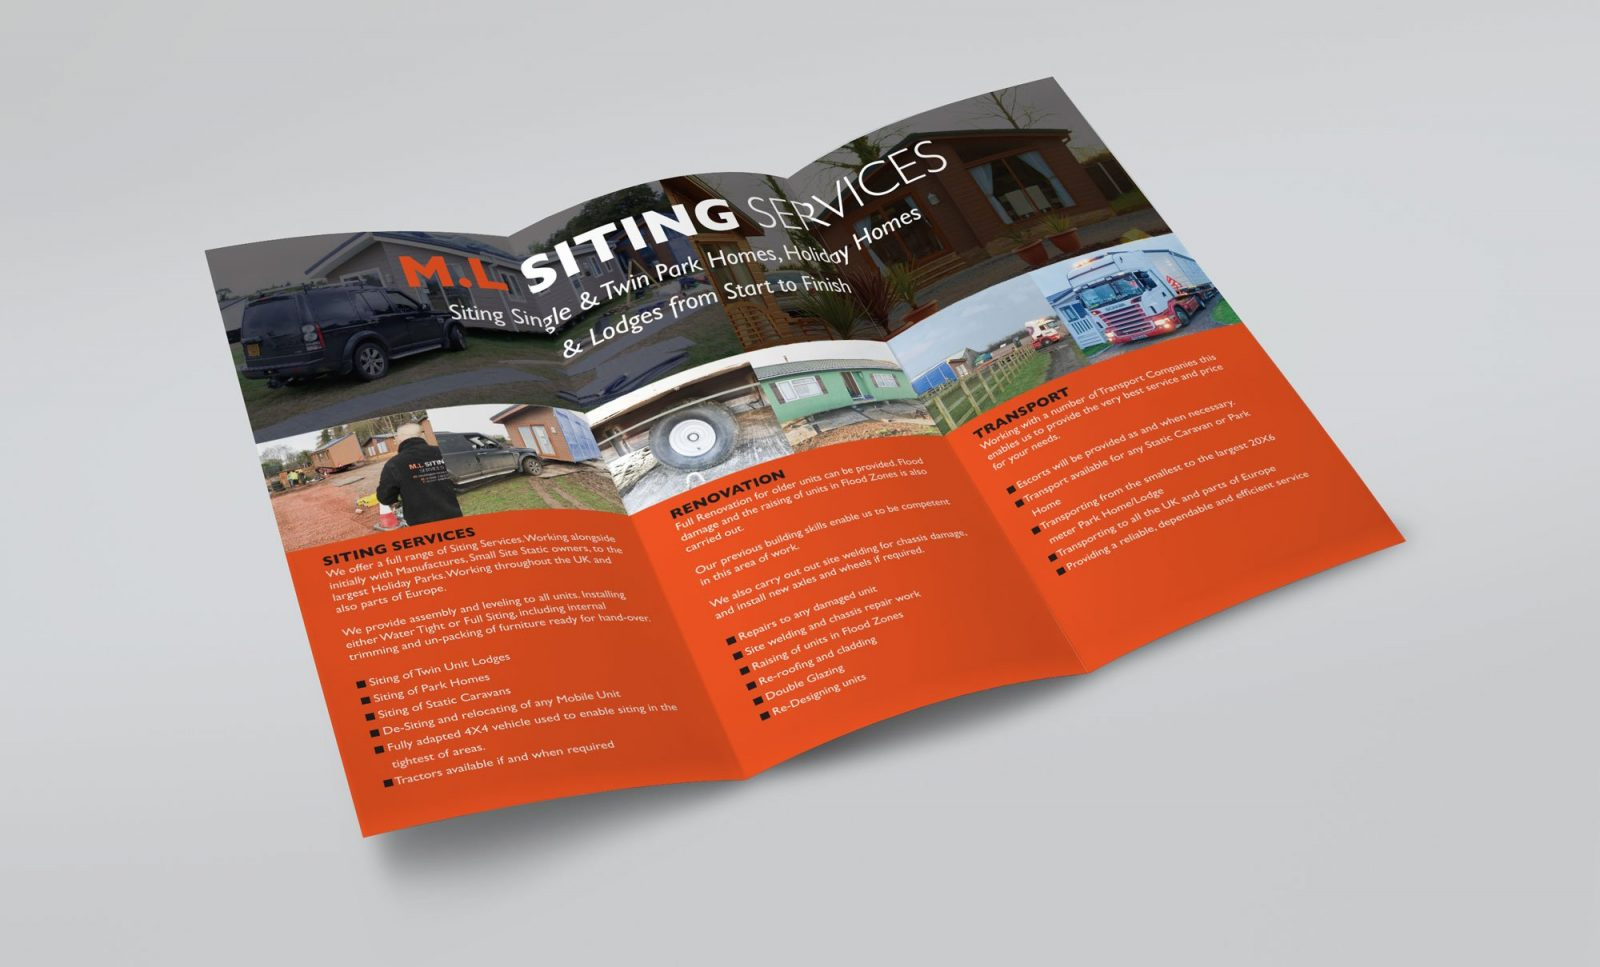 An A4 folded leaflet design for M.L Siting Services, showing the inner pages